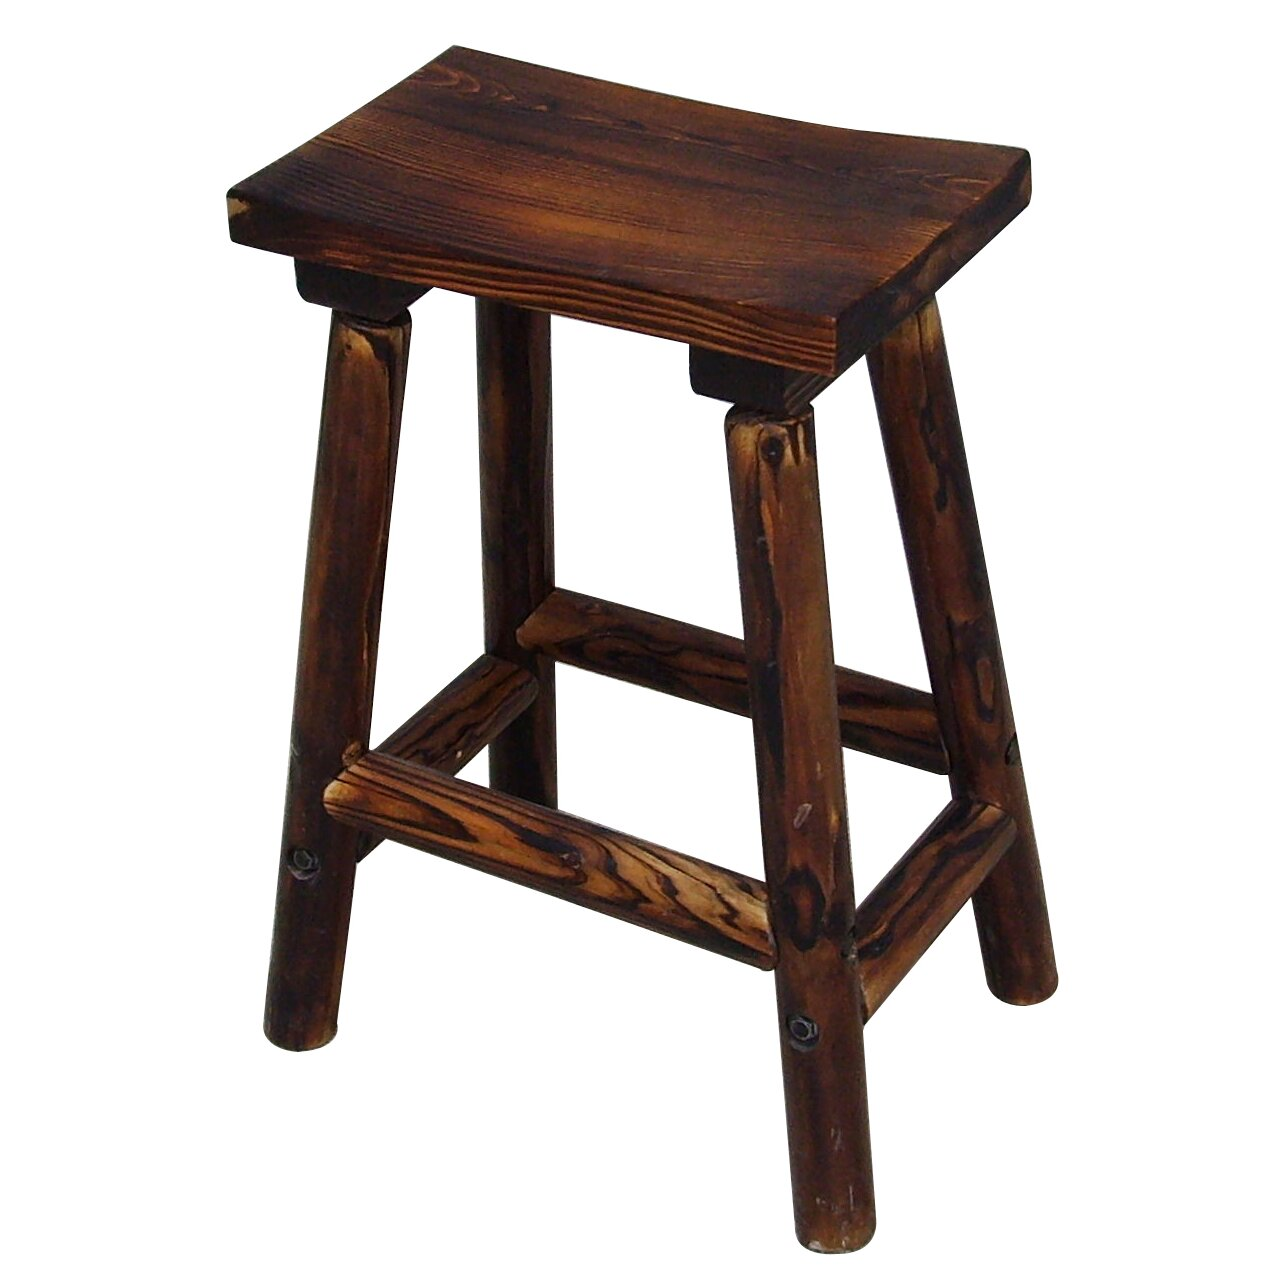 Leighcountry Saddle 28 Quot Bar Stool Amp Reviews Wayfair